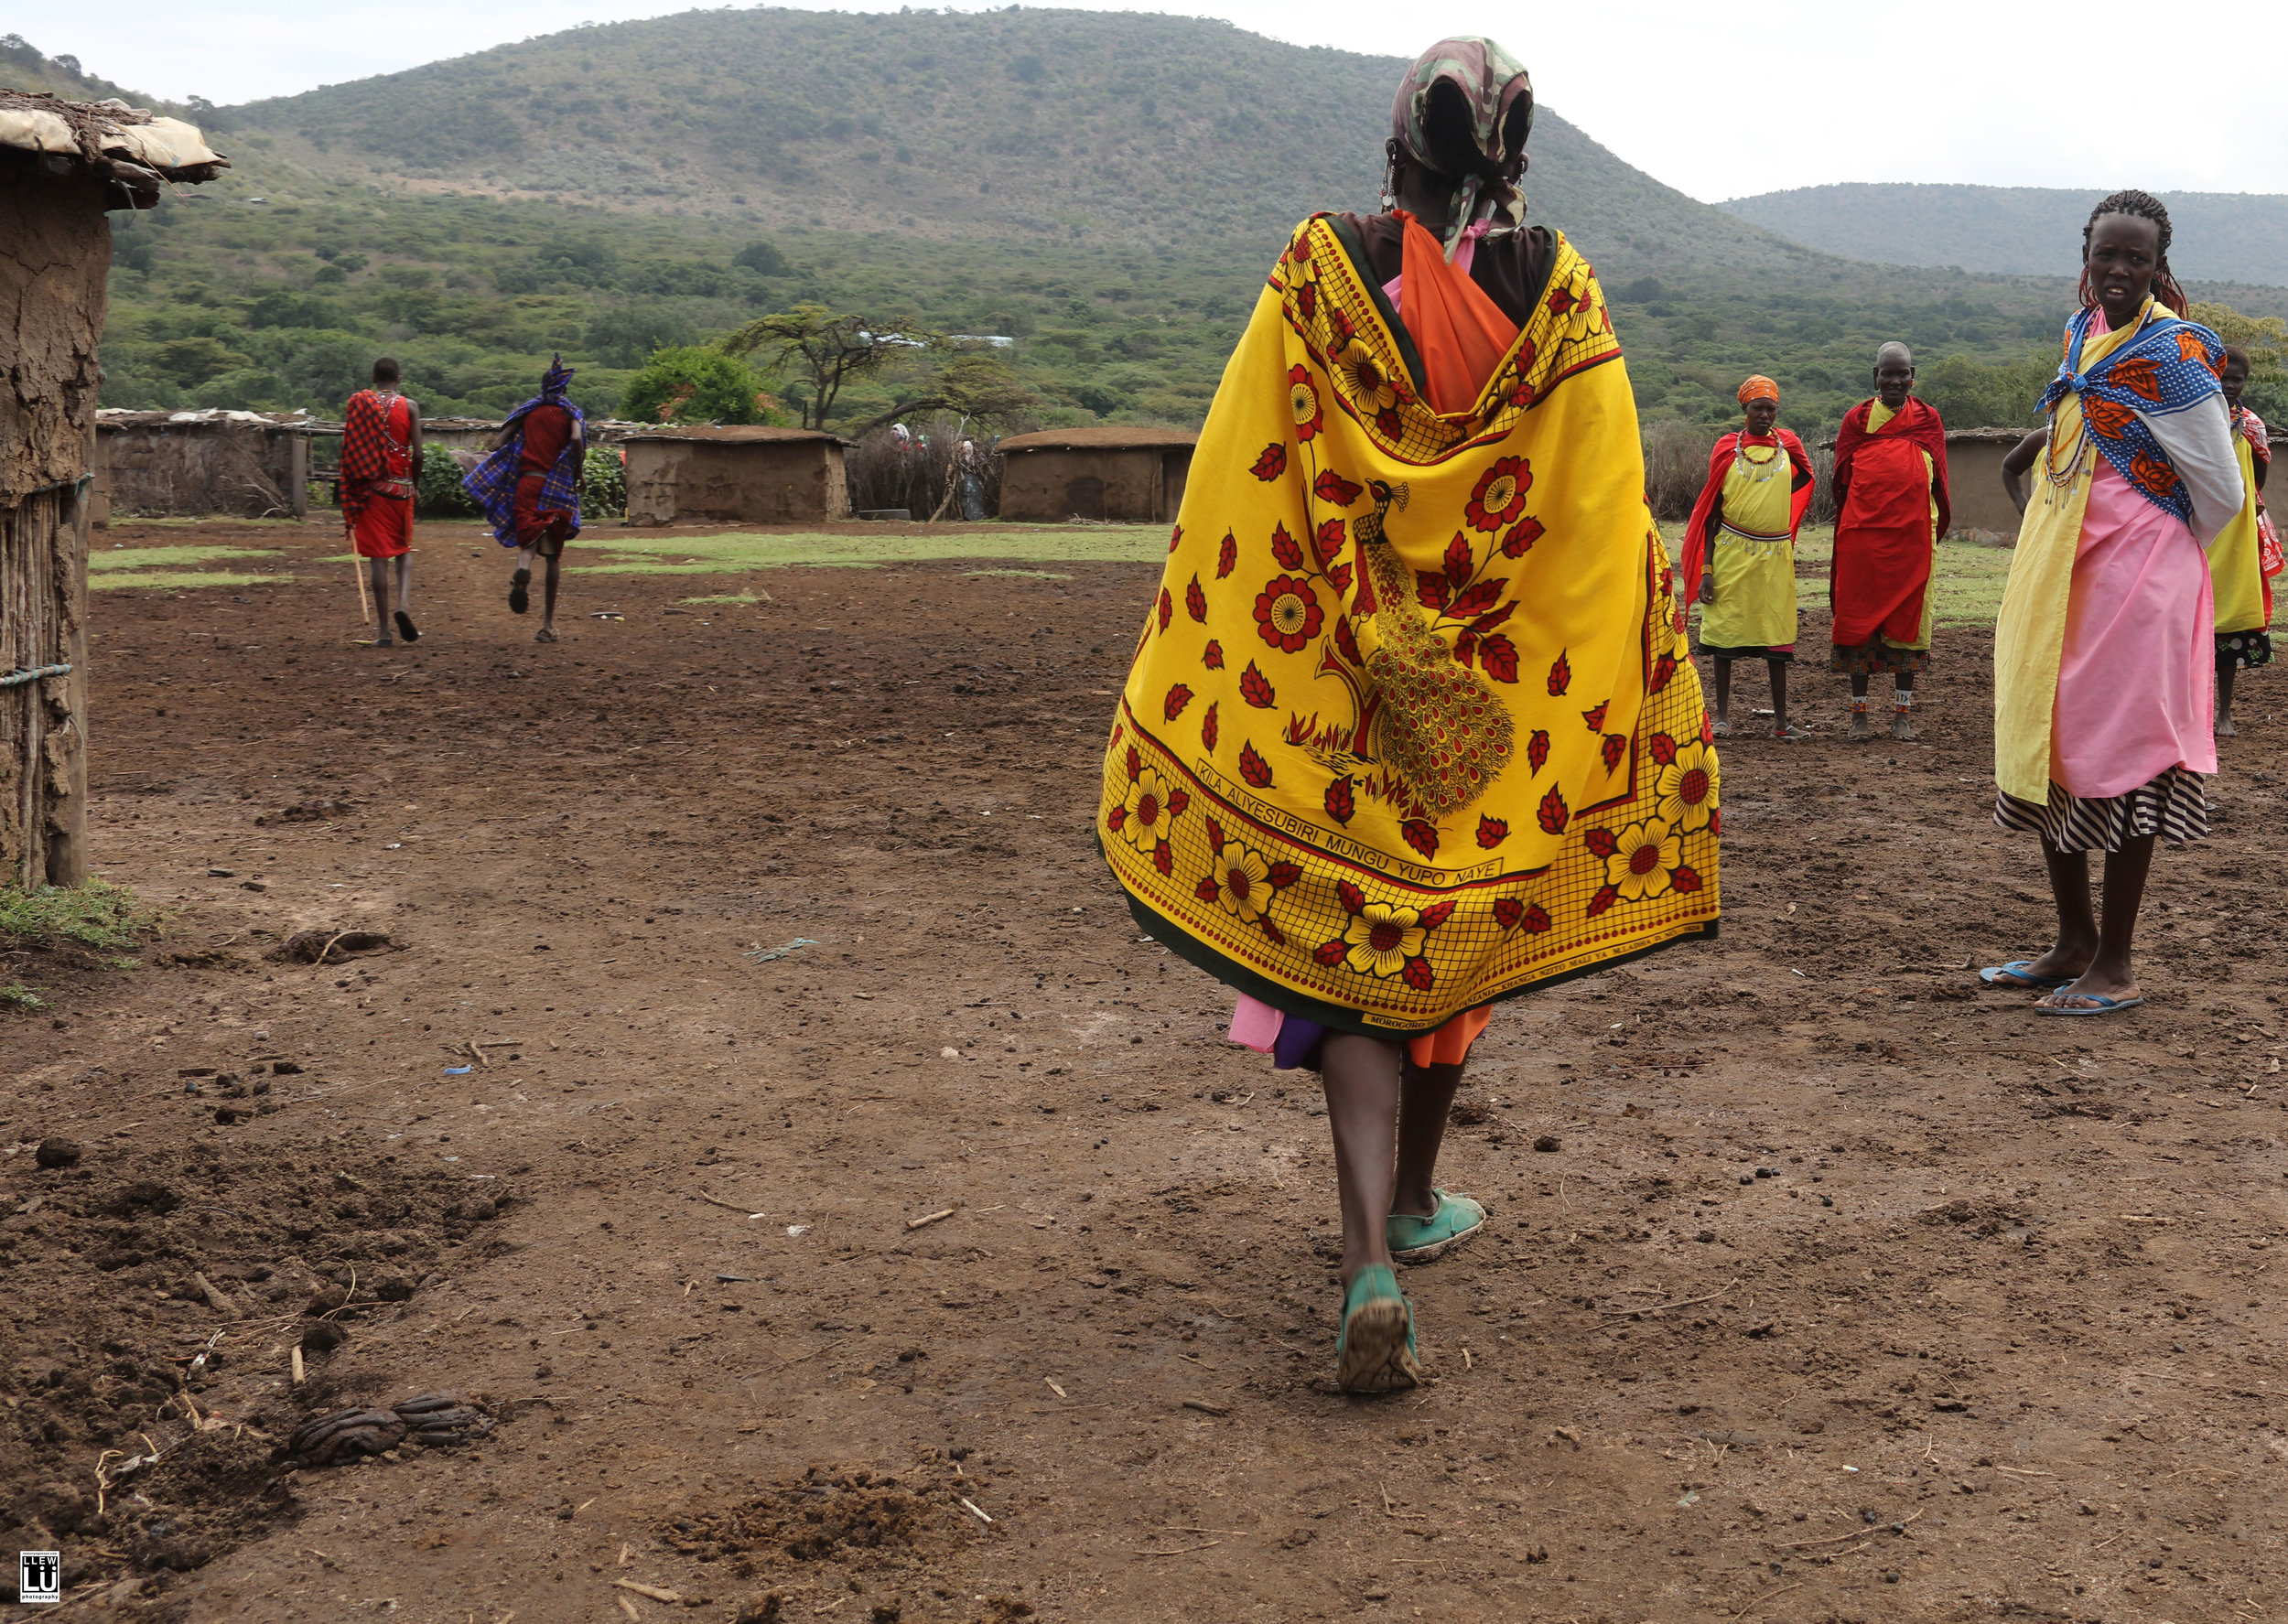 They then lead me into their village. One of the first things that was mentioned to me was that the Maasai are a polygamist community. The women have one home and the men have multiple homes.  I learned that the women are typically circumcised between the ages of 11-13 and soon after, traded to a husband for cattle and cash. It is a transaction made by the fathers. The boys are circumcised between the ages of 7-20, depending on maturity.